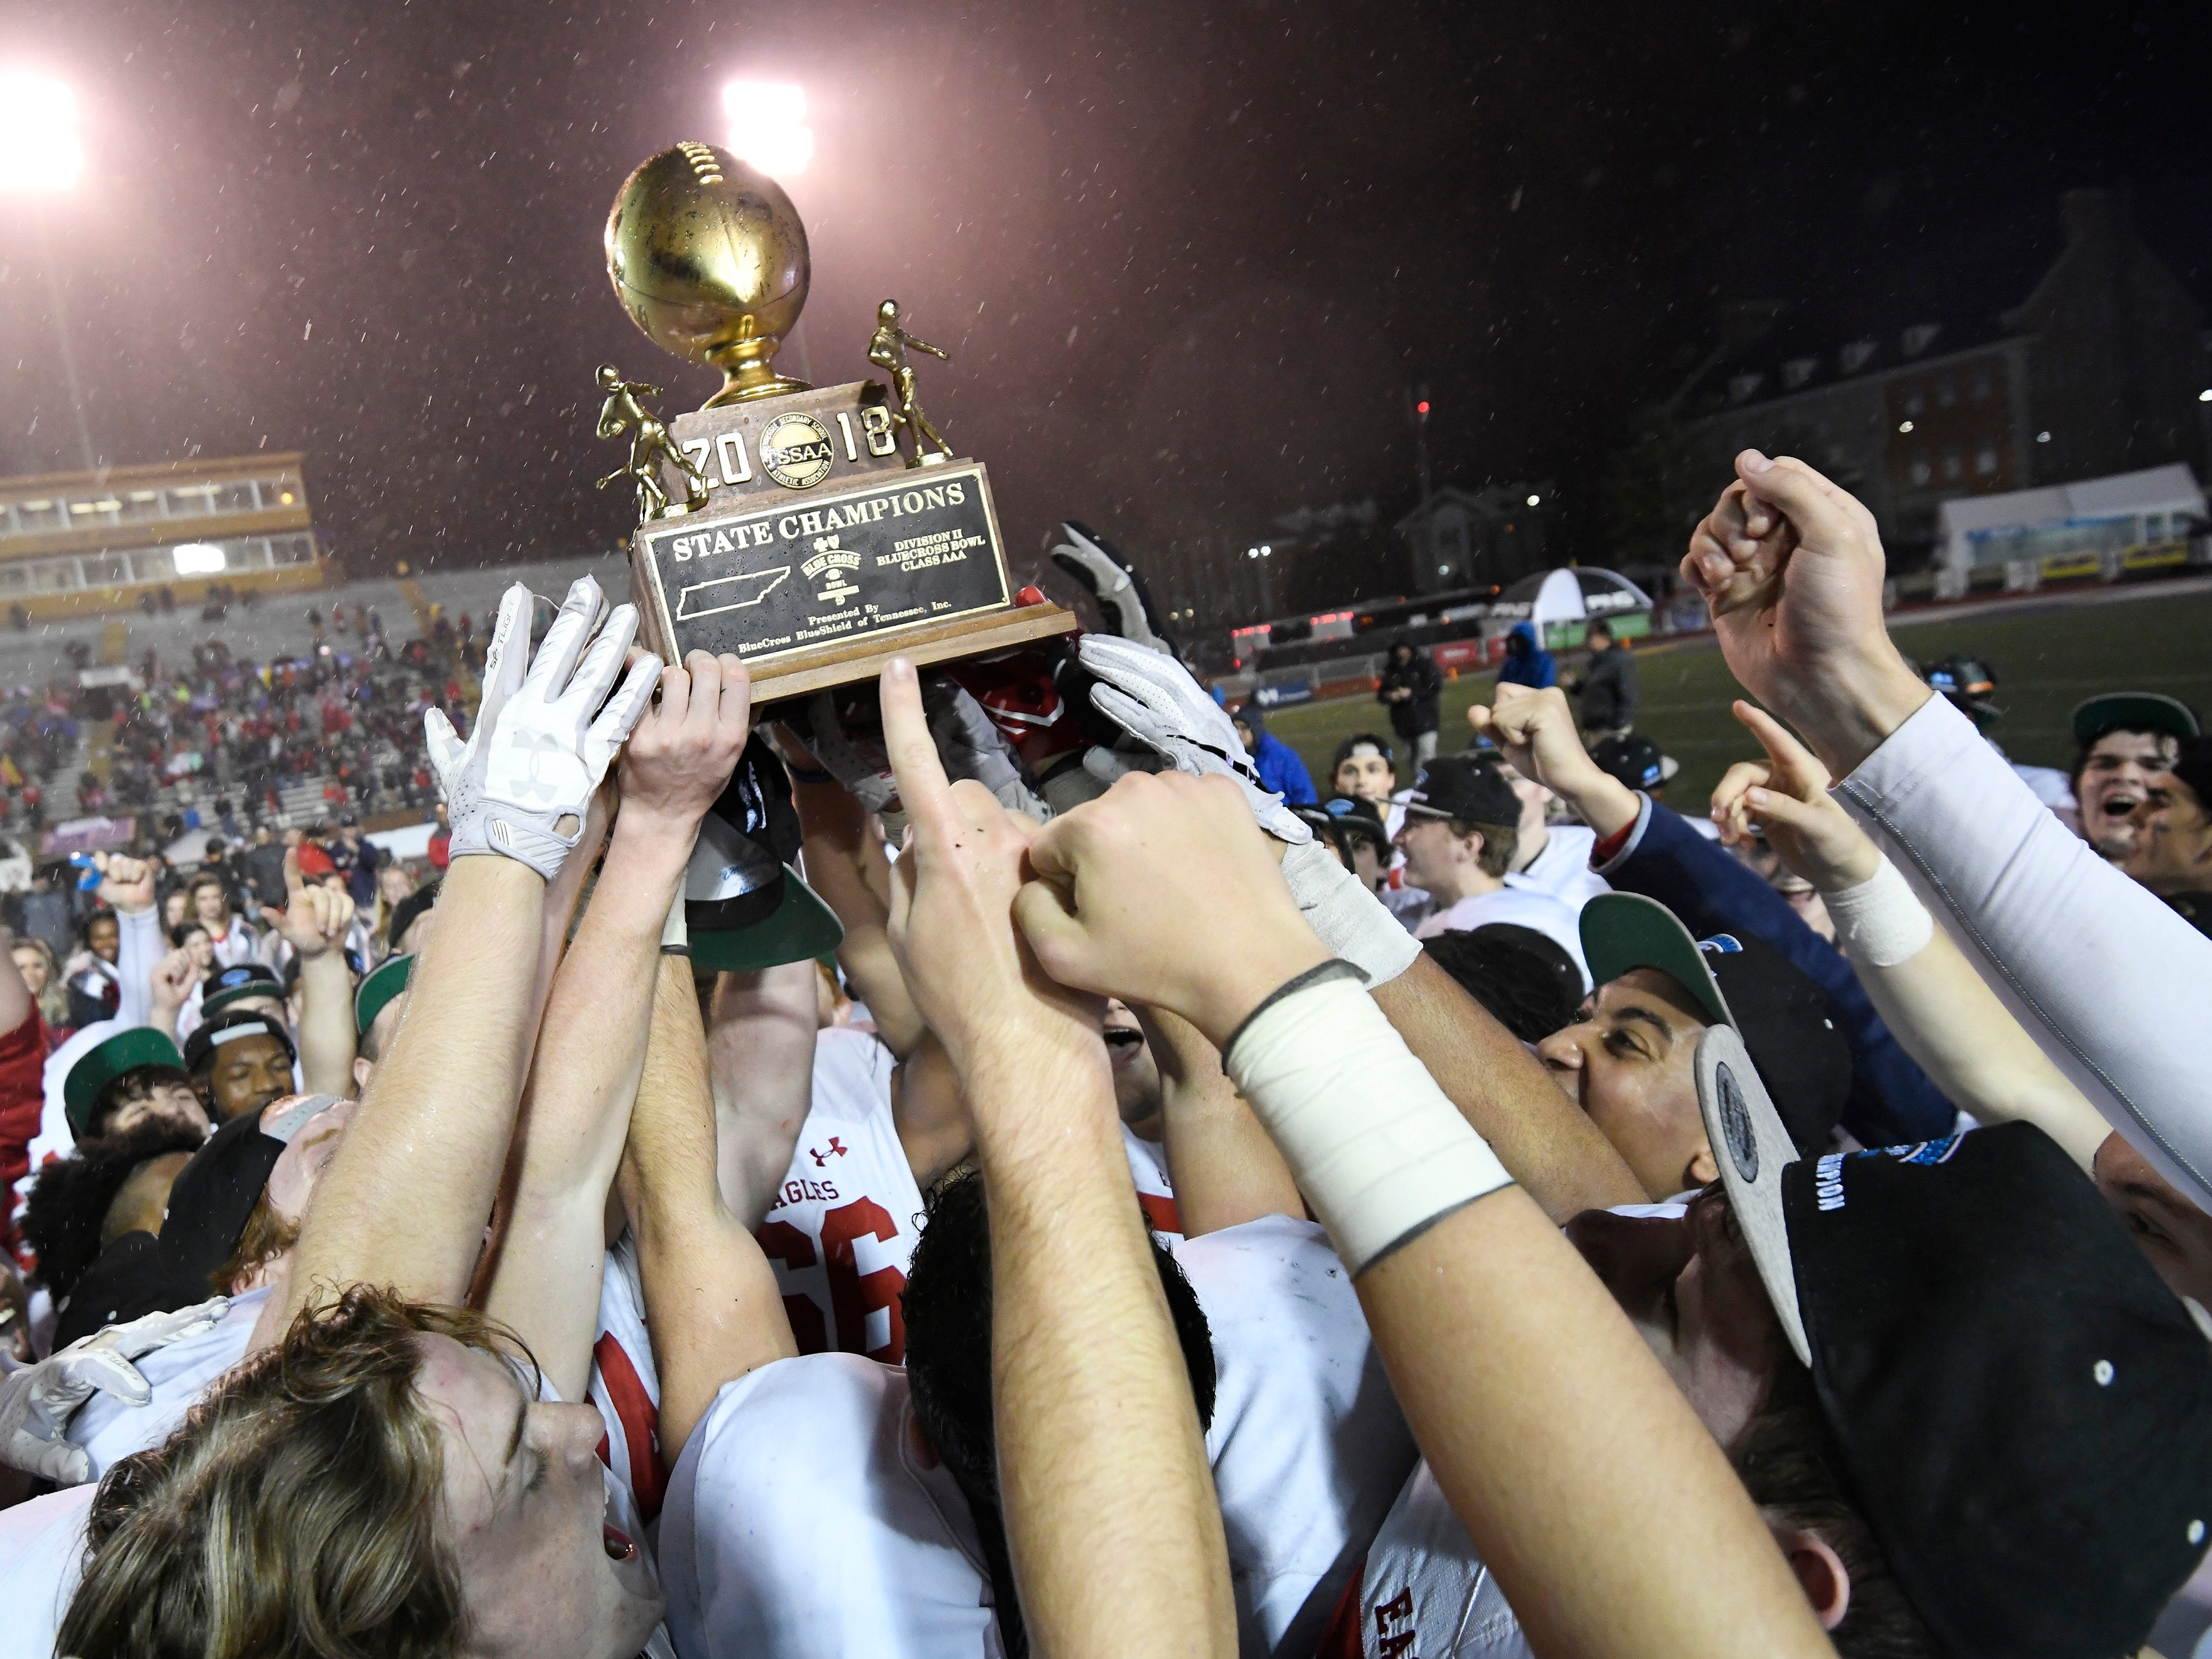 BA players hoist the championship trophy at the Division II-AAA BlueCross Bowl state championship at Tennessee Tech's Tucker Stadium in Cookeville, Tenn., on Friday, Nov. 30, 2018.